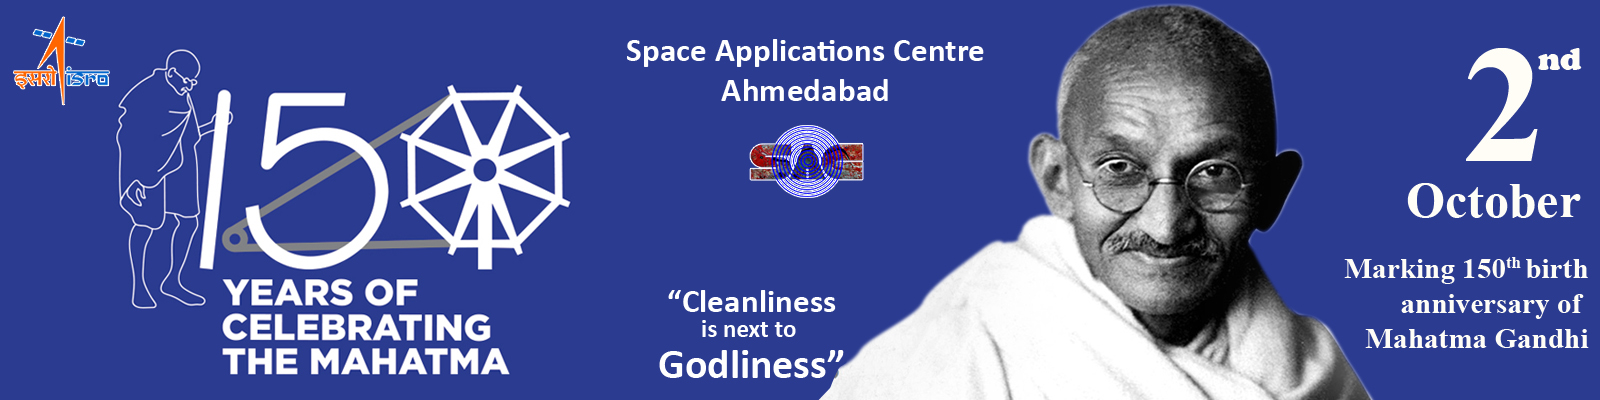 Space Applications Centre